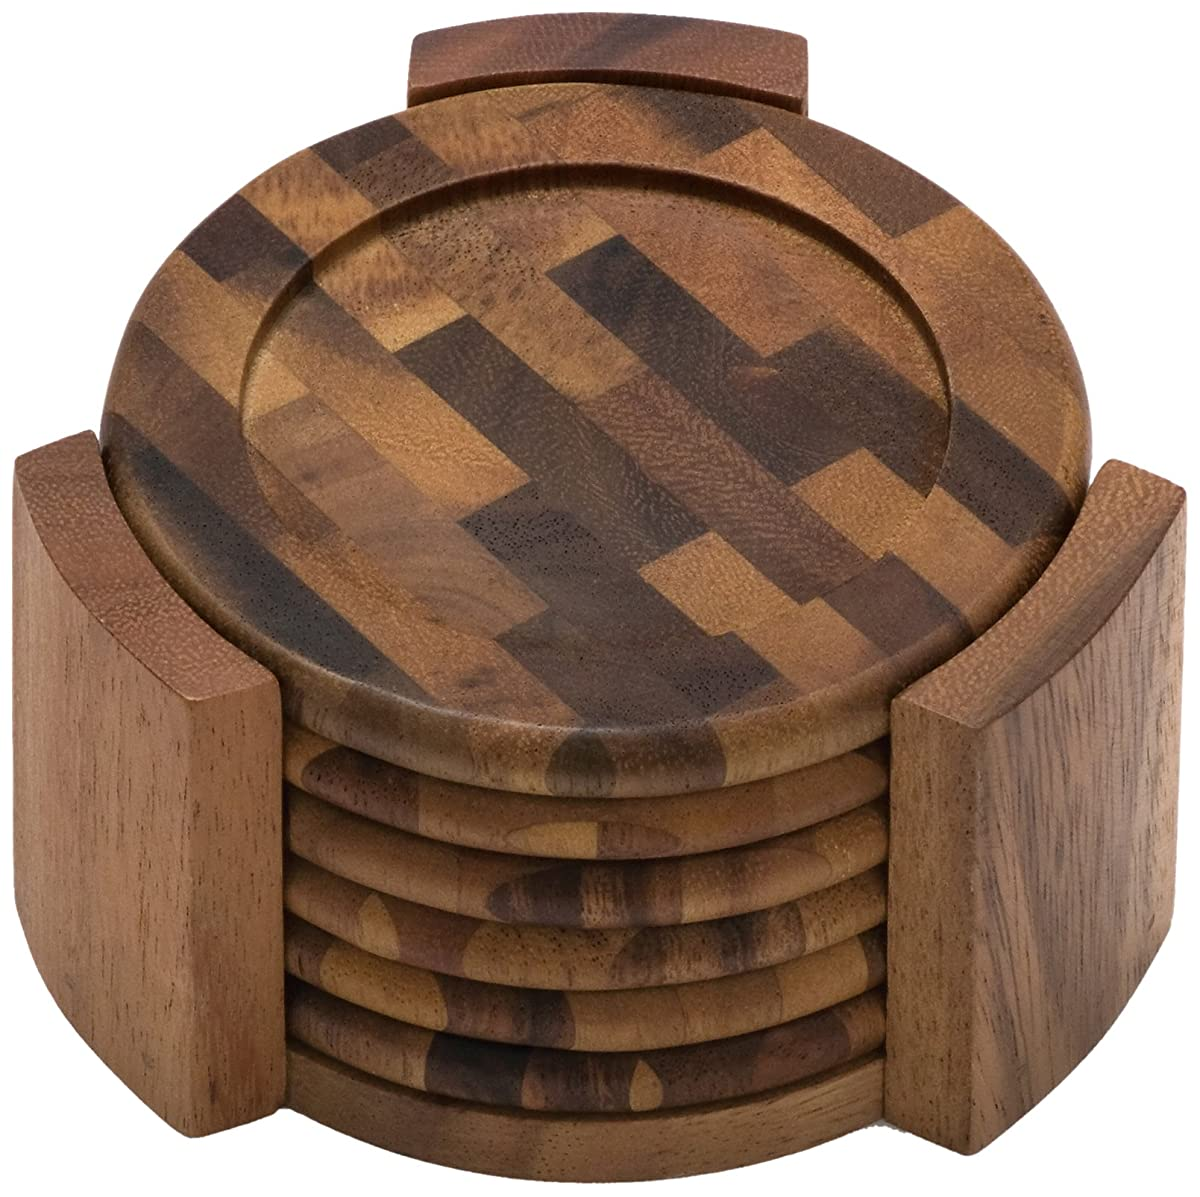 Lipper International 1134 Acacia End Grain Wood Round Coasters and Caddy, 7-Piece Set